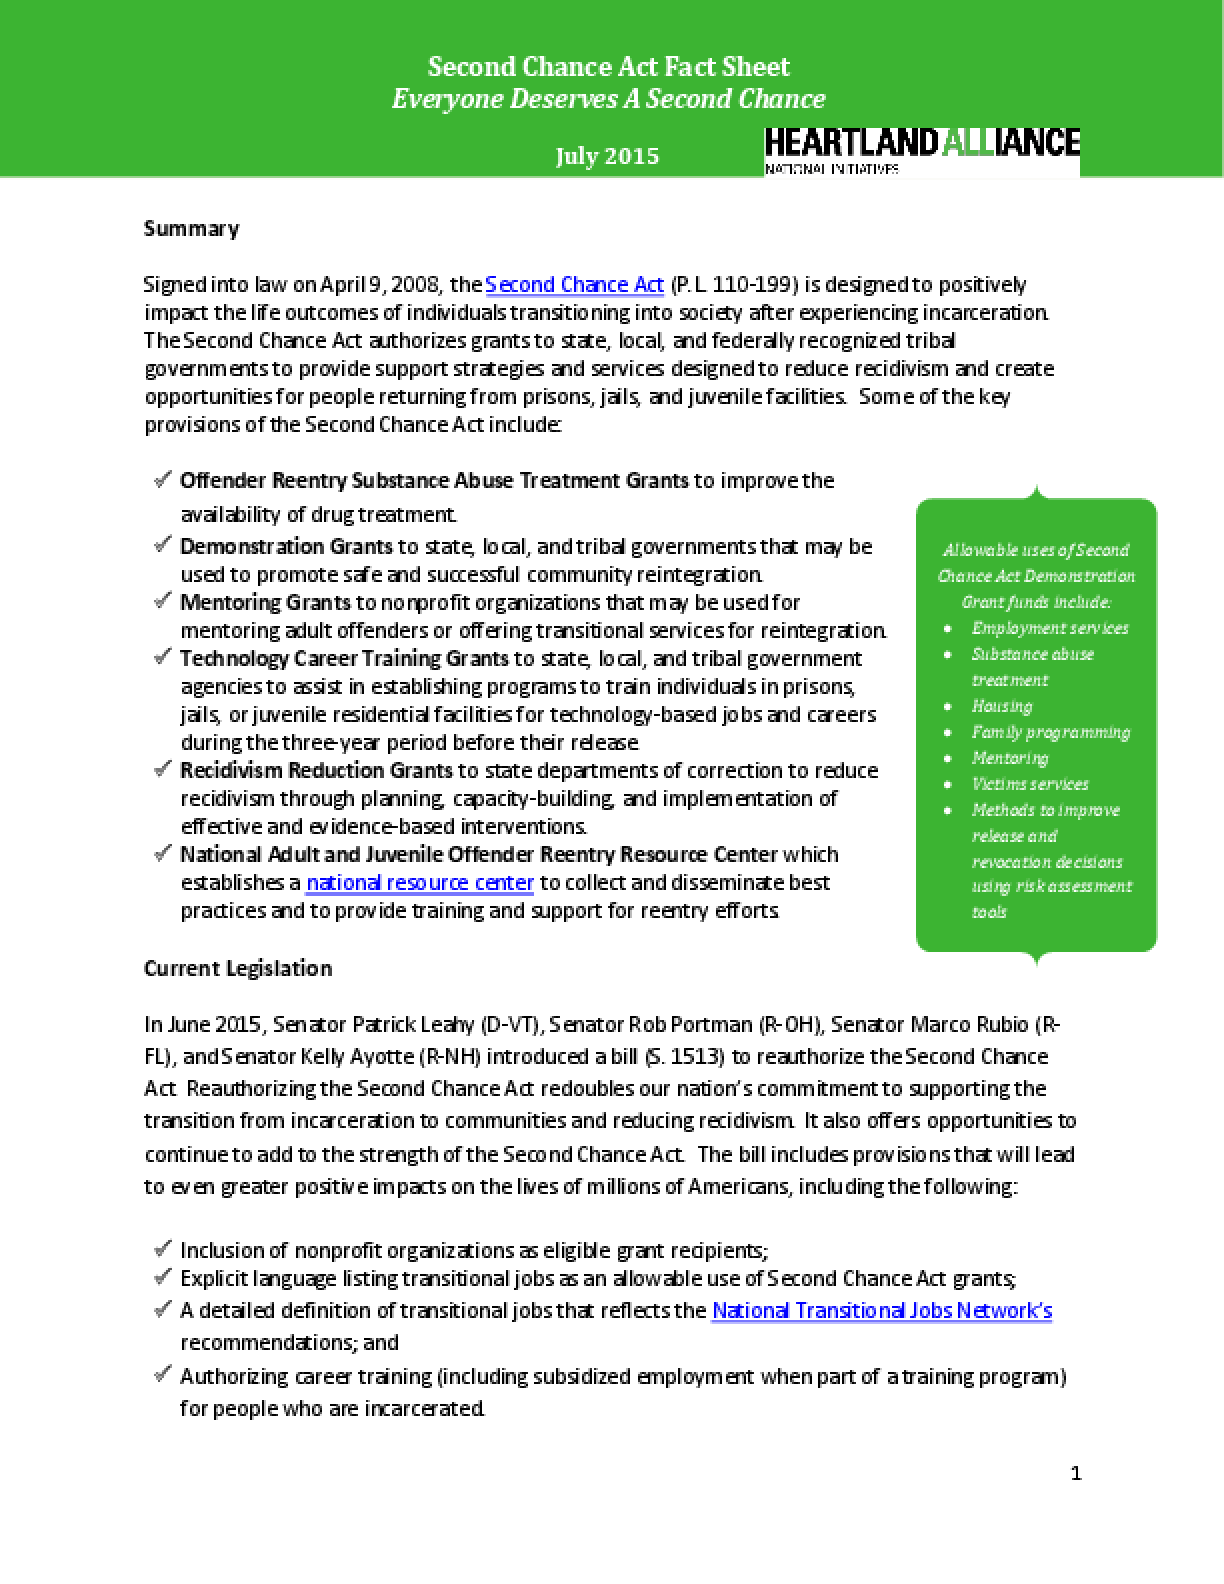 Second Chance Reauthorization Act - Fact Sheet